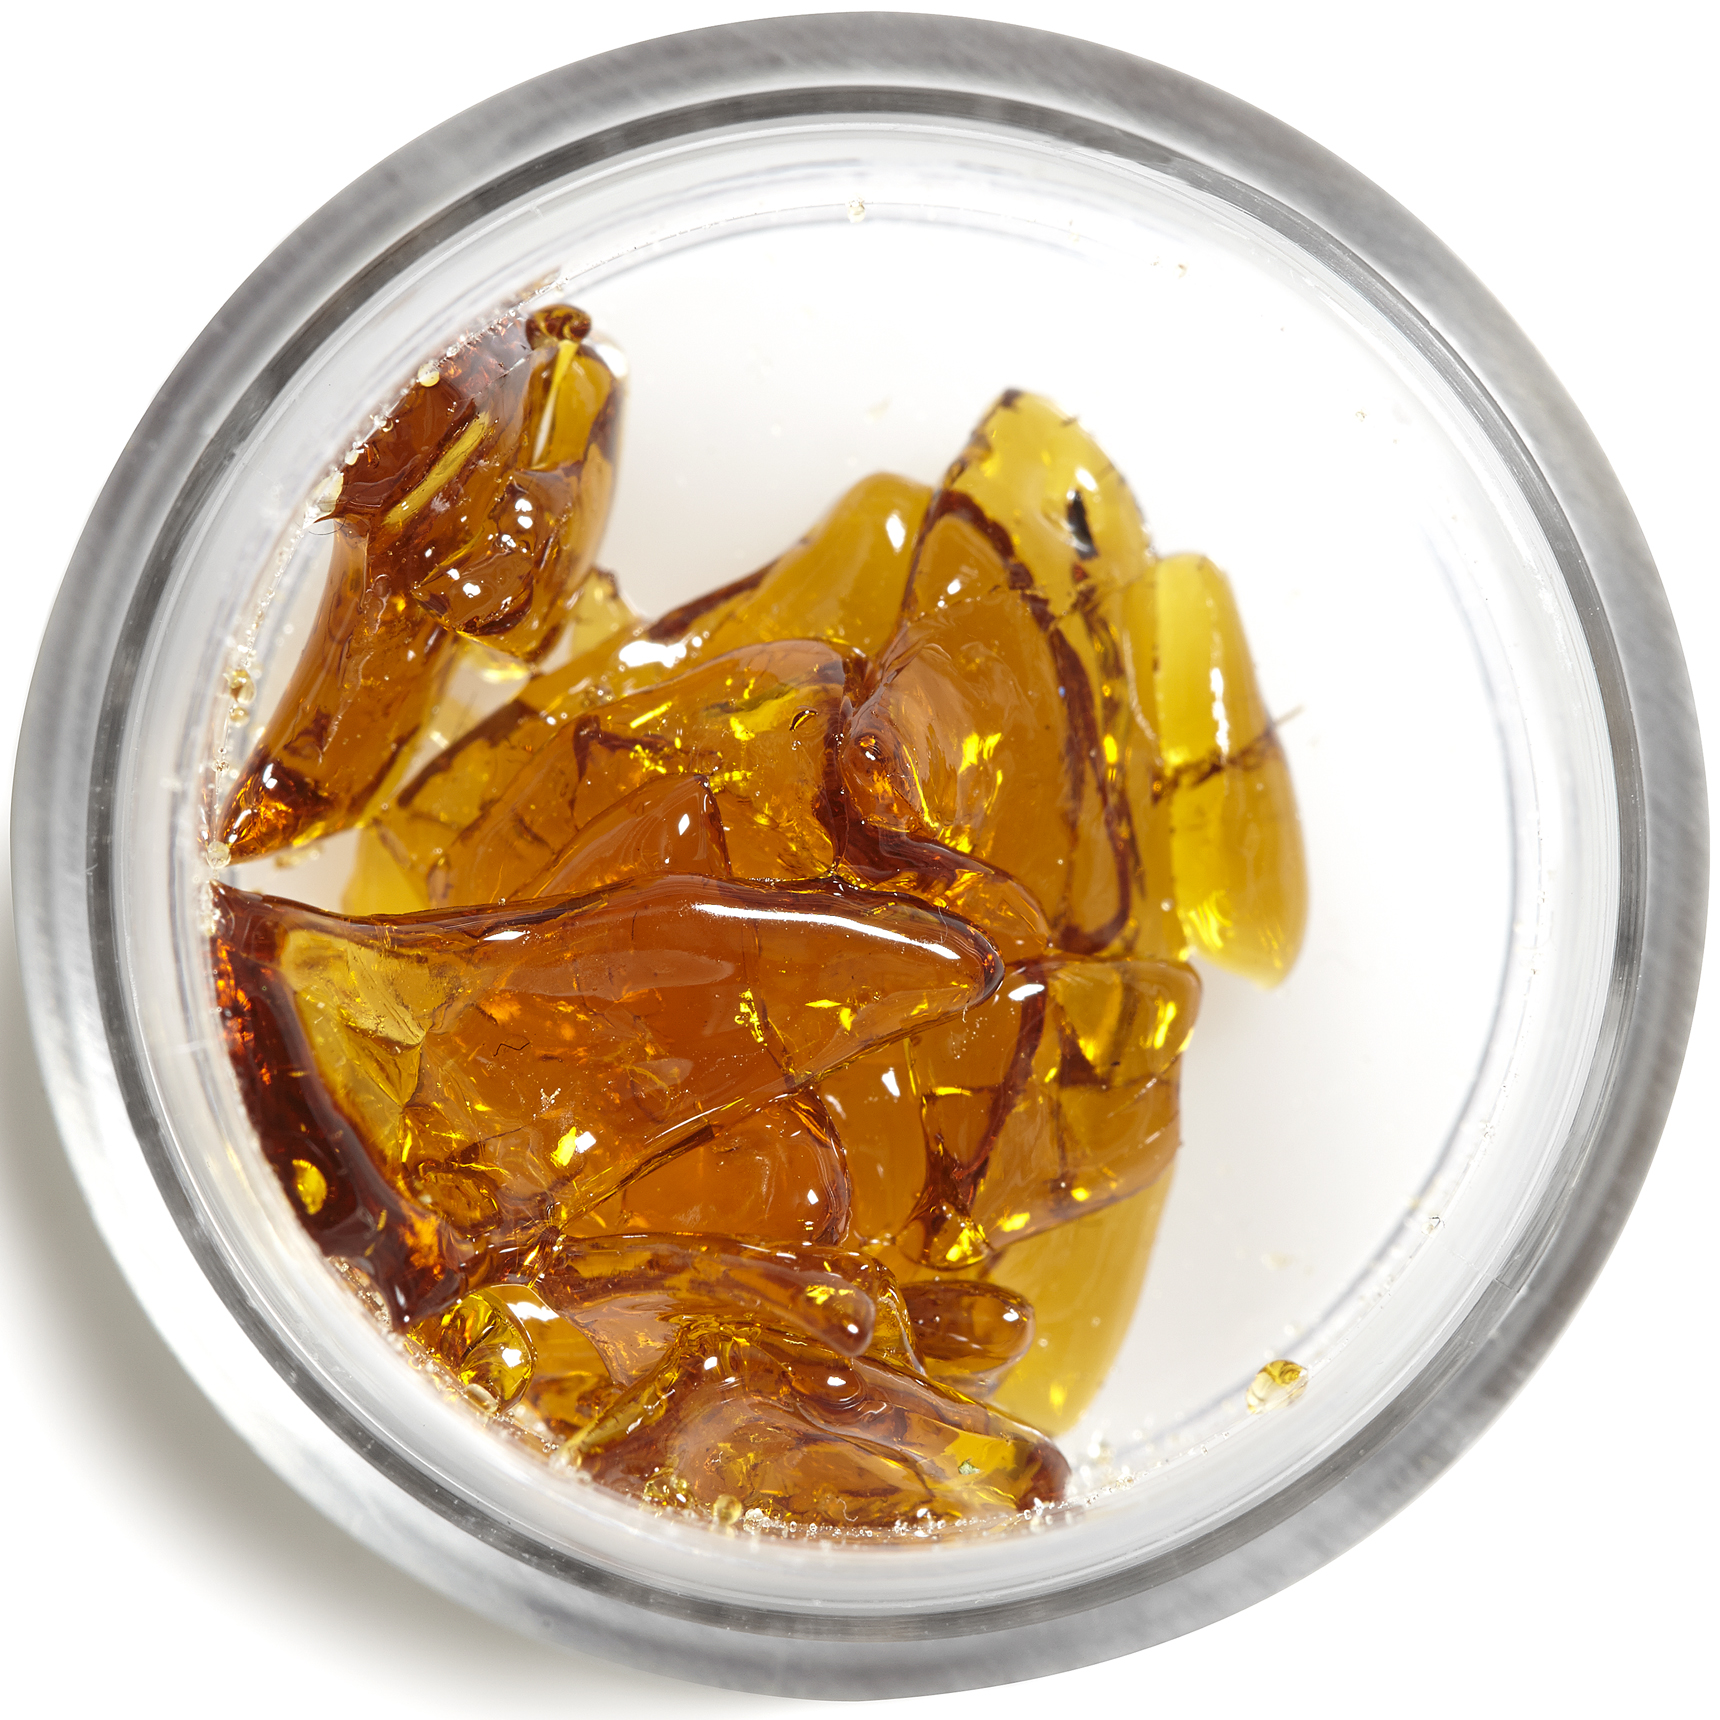 WEB_Blue Dream Shatter_5328_$50_Studio_03.18.13 copy.jpg